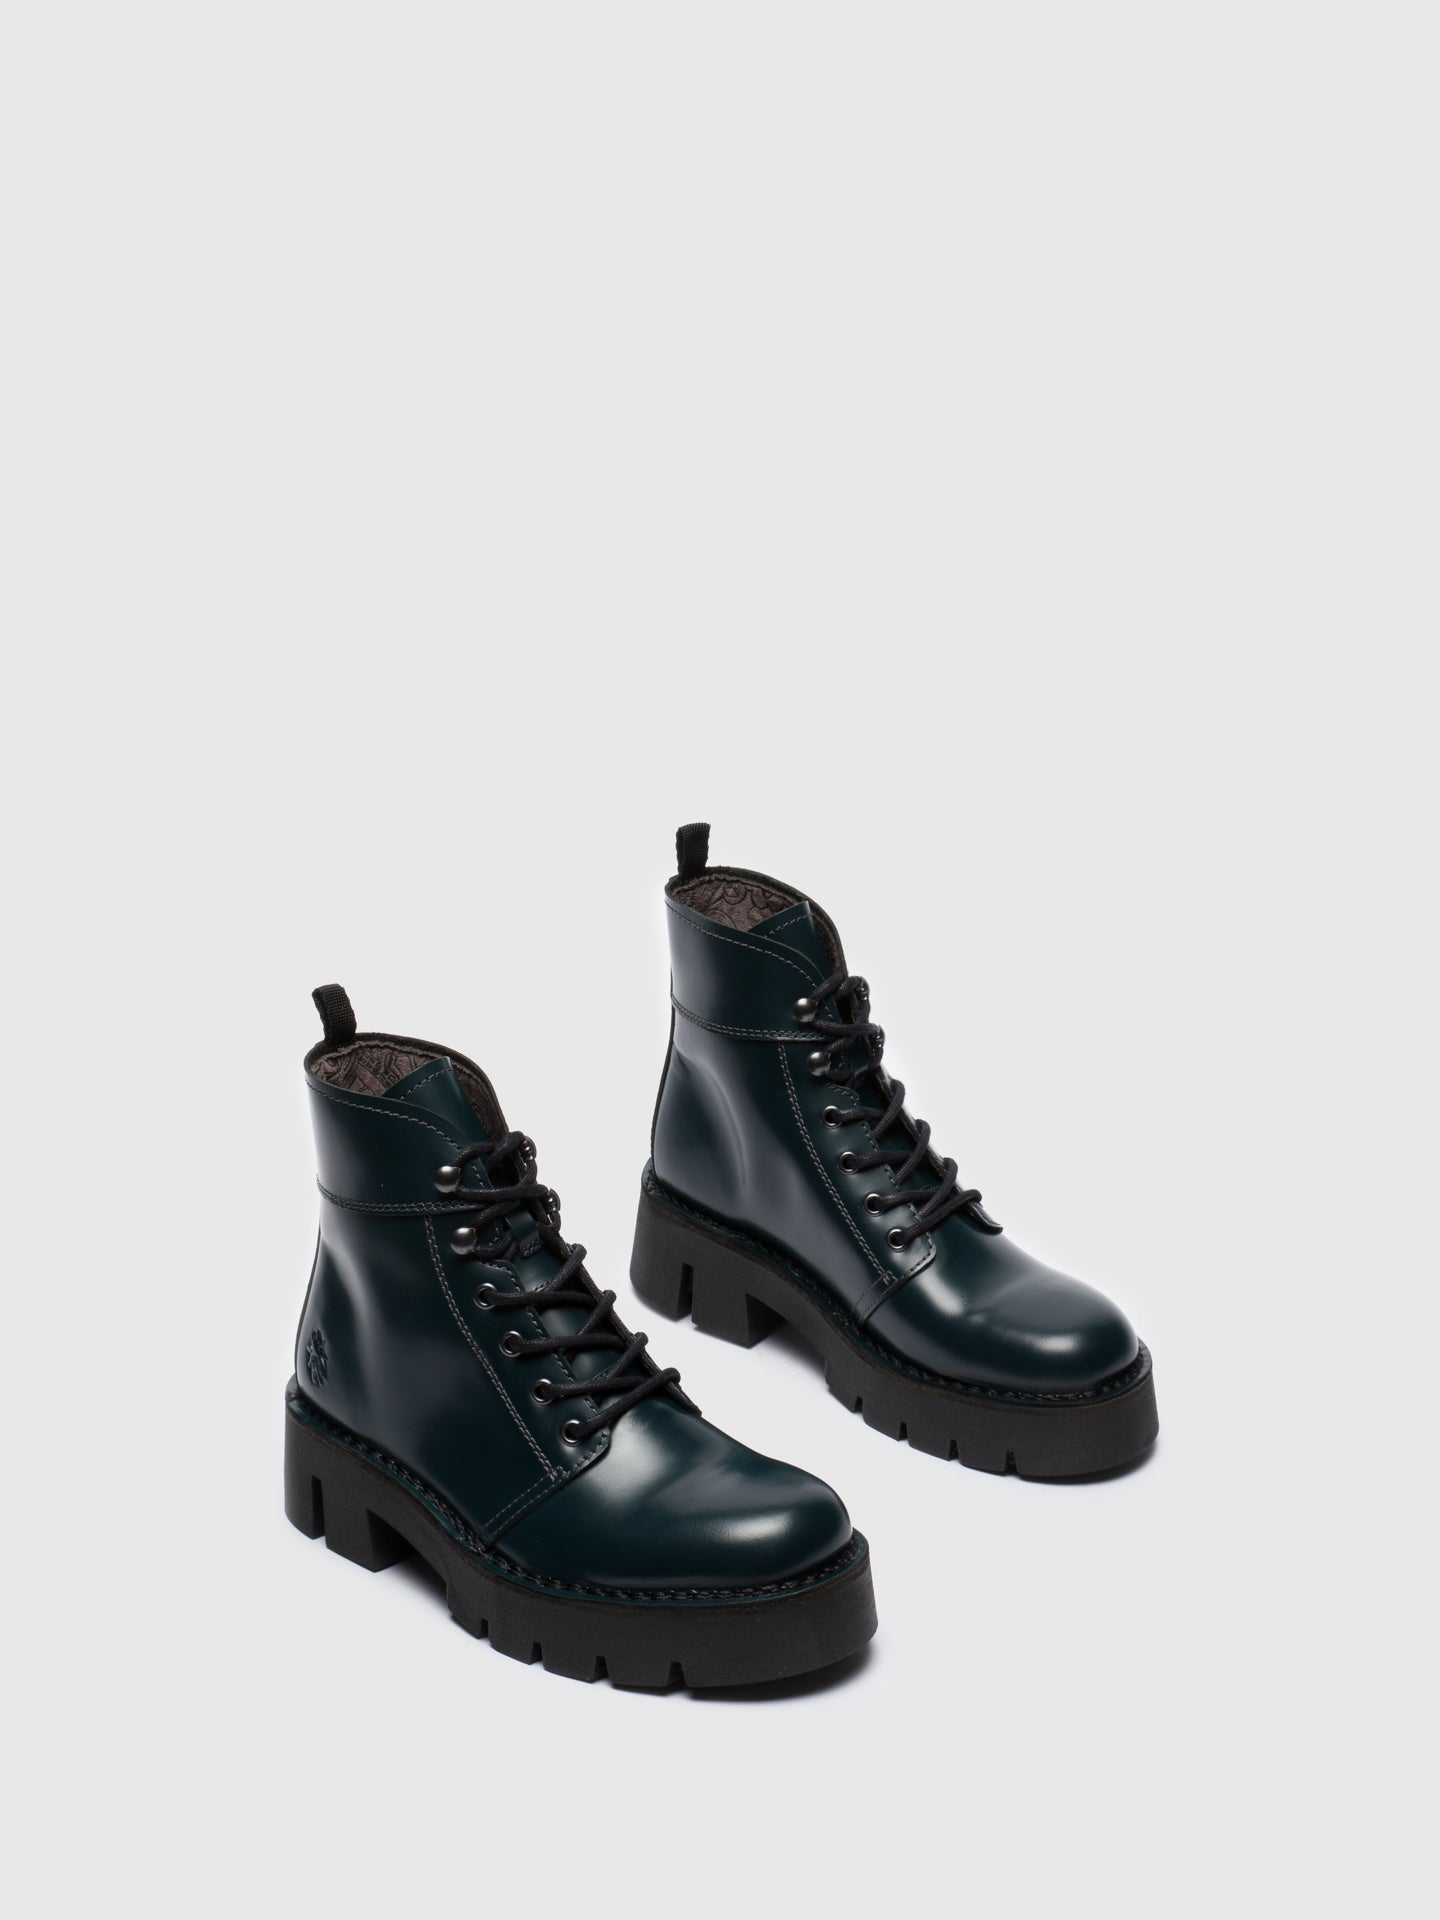 Blue Lace-up Ankle Boots - Overcube